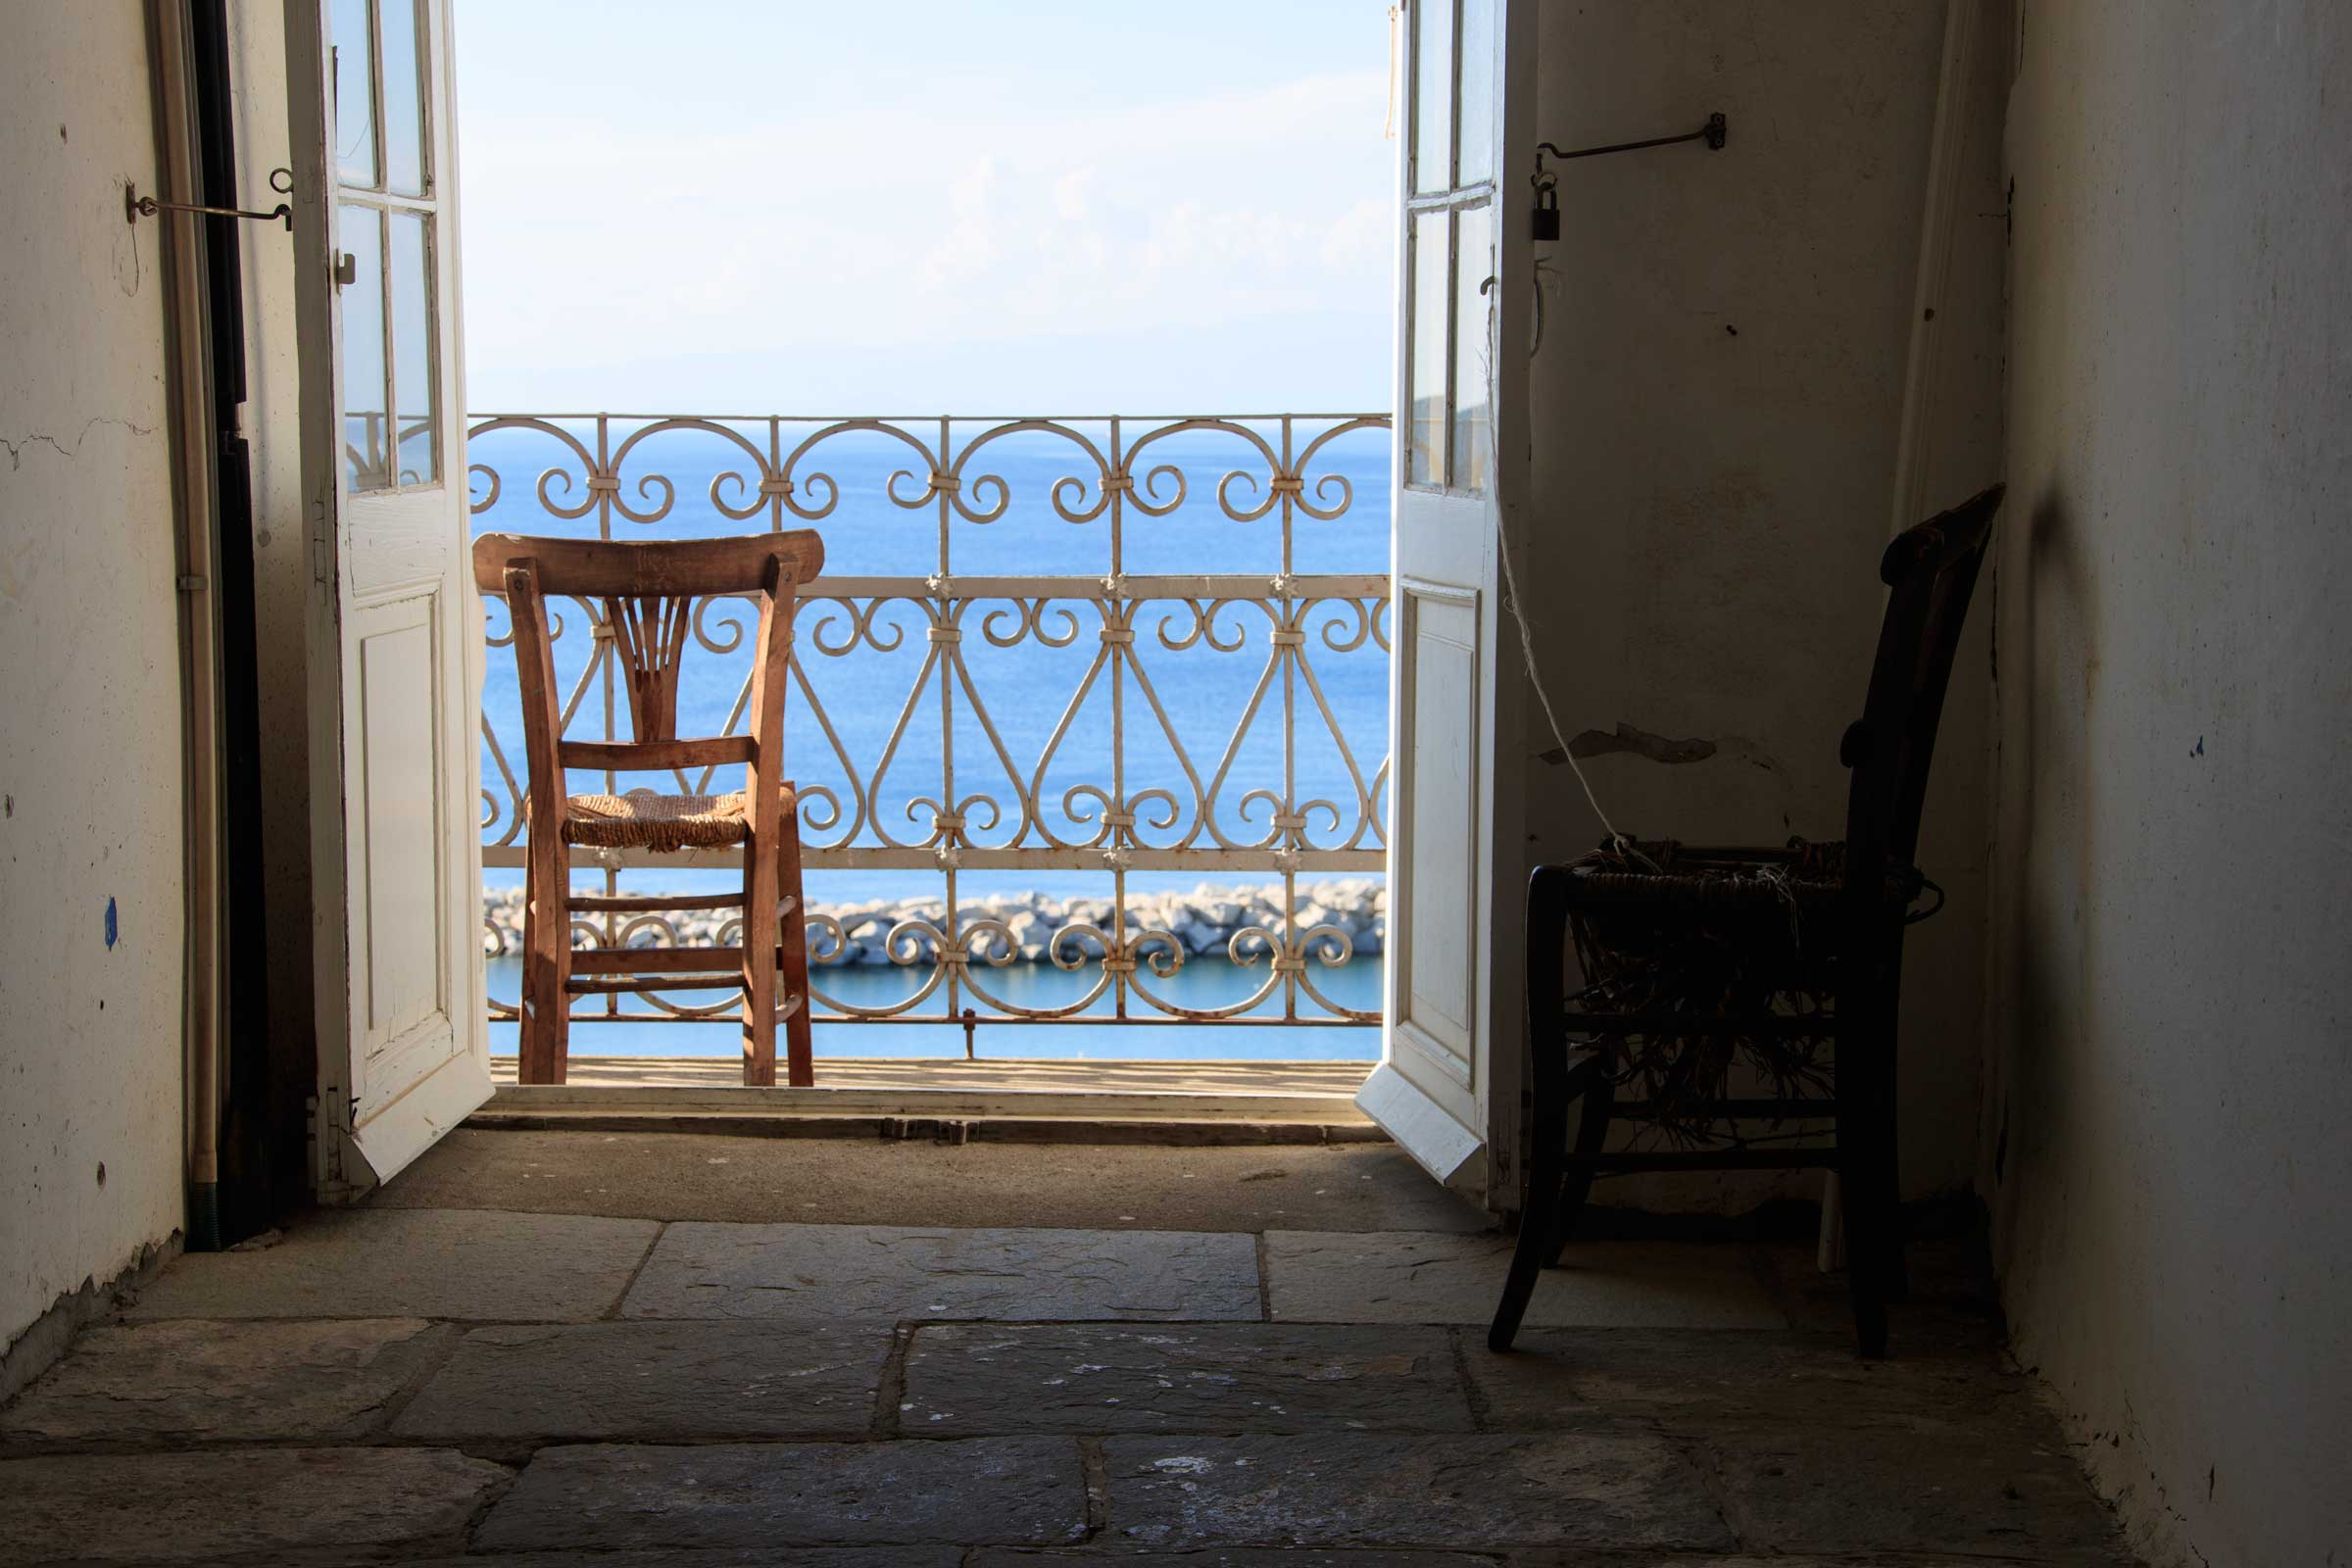 self love - Ascetic Experience, Vatopaidi (Vatopedi), Mount Athos, Holy Mountain